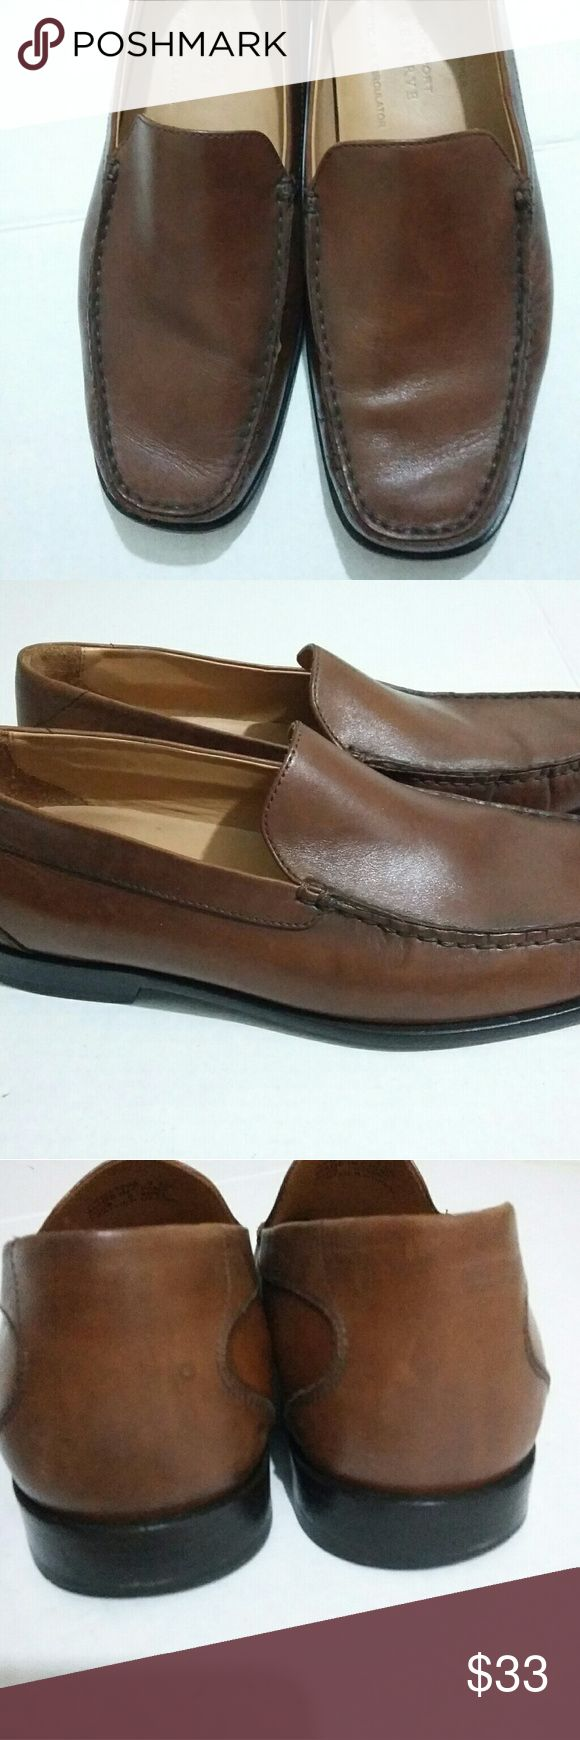 Rockport Reserve Mens Shoes Brown Loafers Size 9.5M Slip on shoes Leather upper Kinetic Air Circulation Shoes have minor scuffs A bit worn on the inside heel of left shoe Please pictures for these details Overall good condition Made in China Rockport Shoes Loafers & Slip-Ons